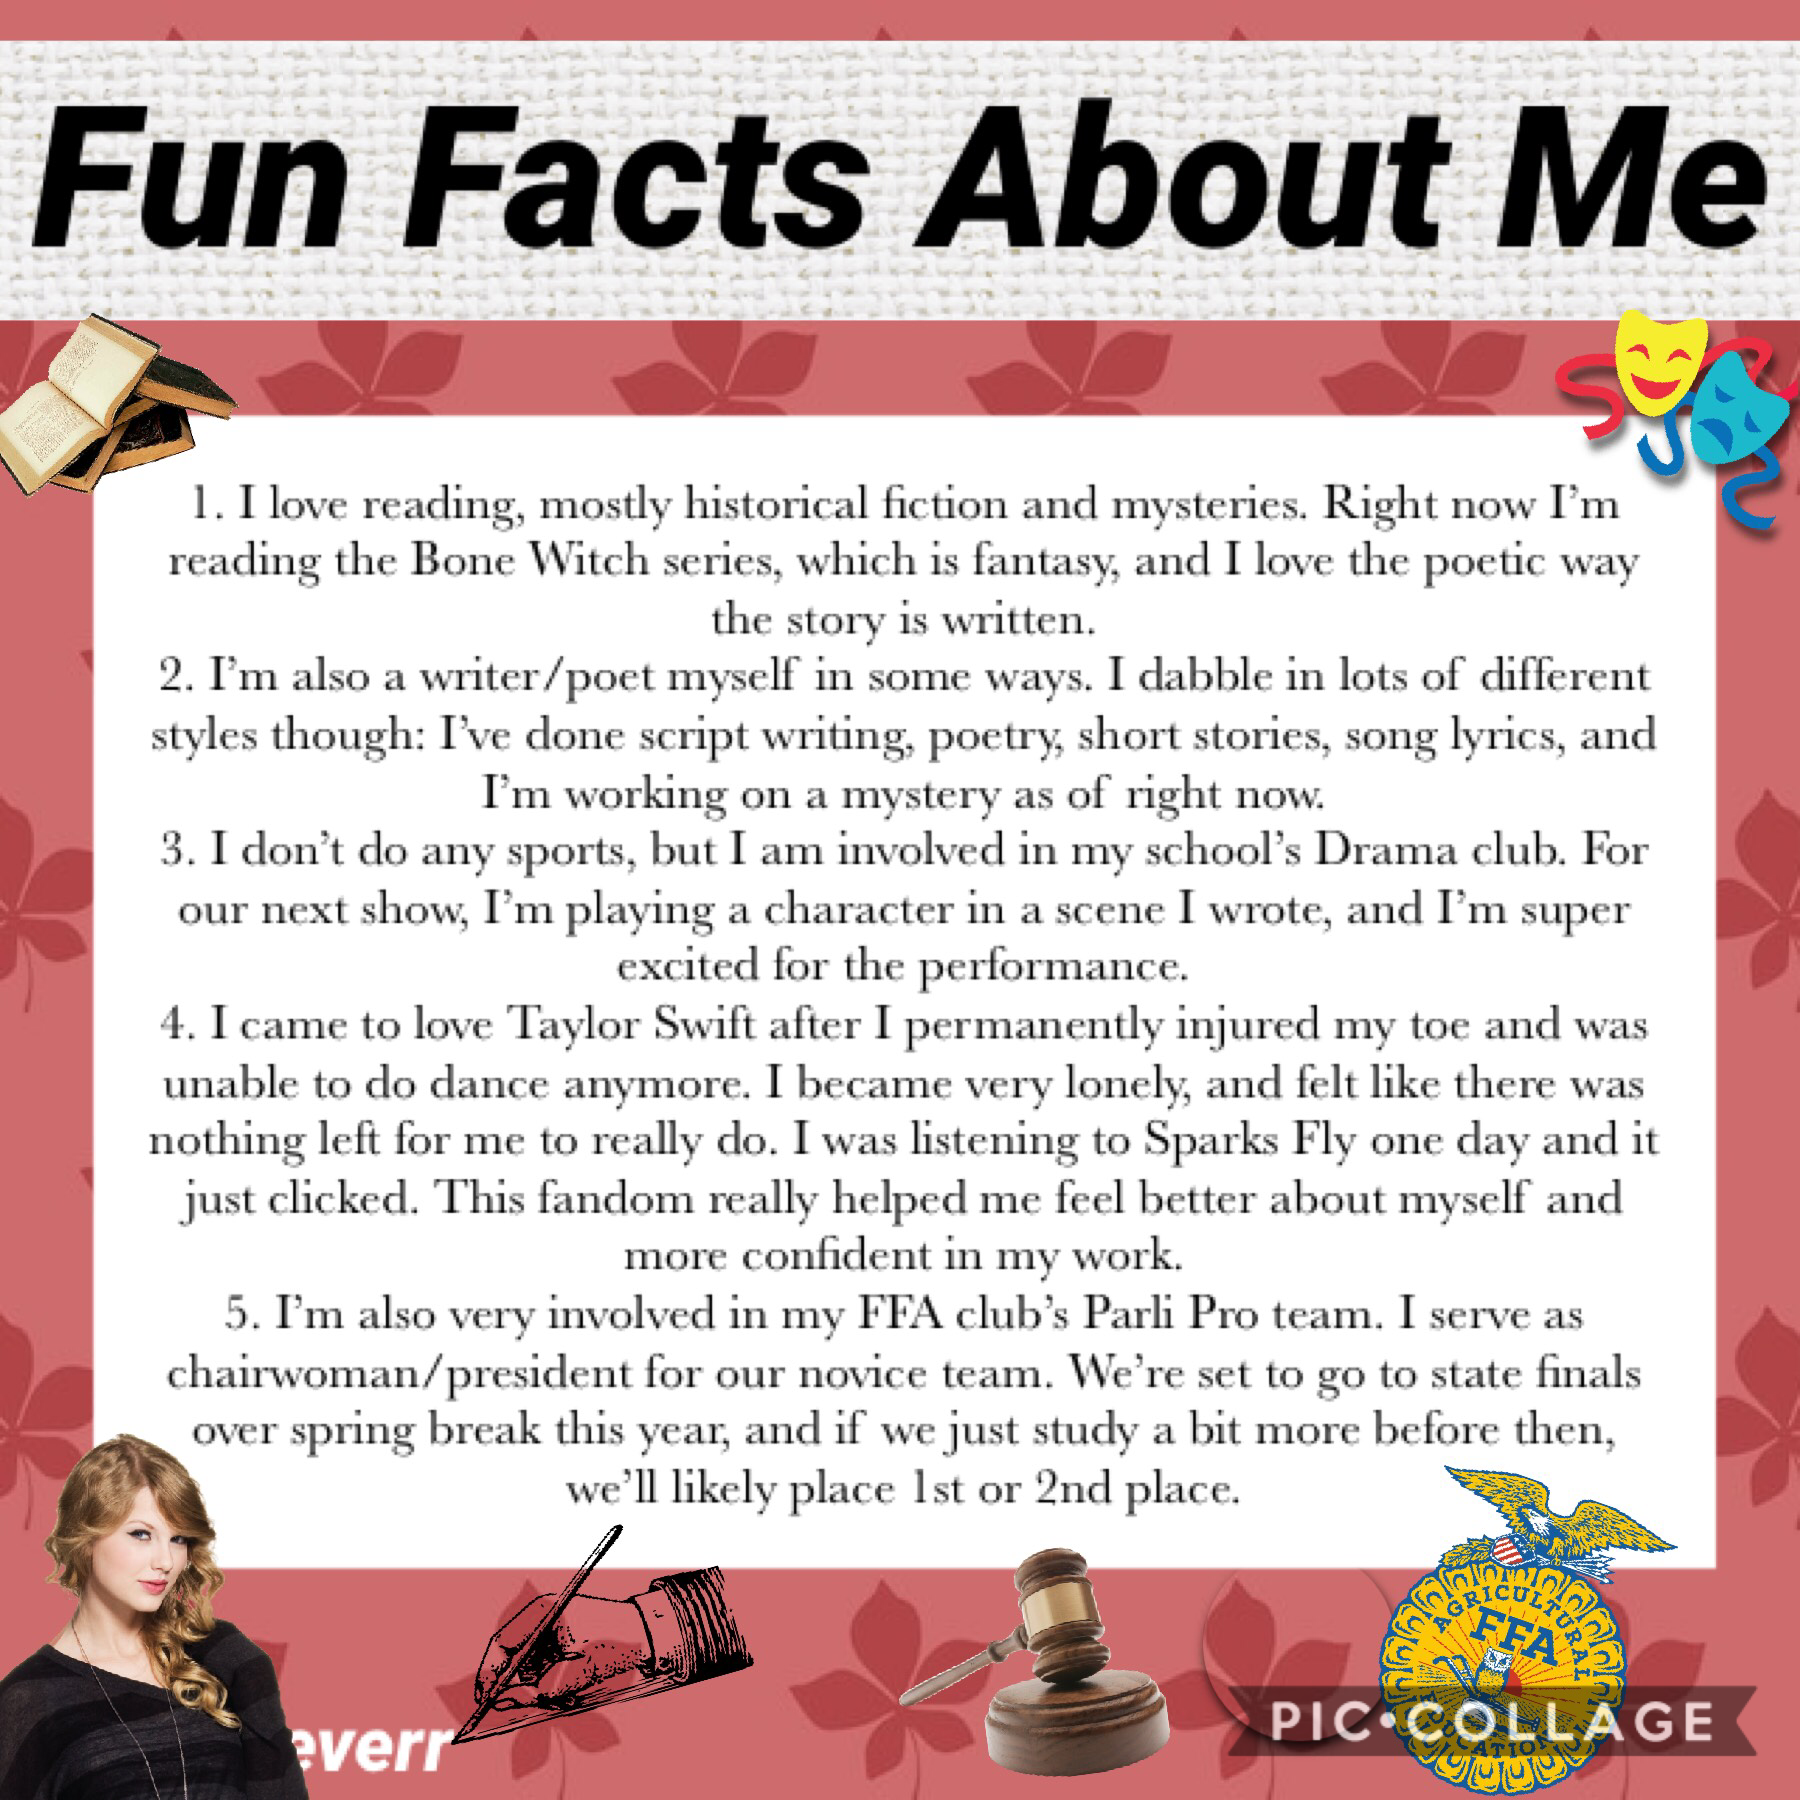 ❤️TAP❤️ I haven't updated this account with anything about myself for a long time, so I thought I could restart my 5 fun facts per week for a month or so. (No question since I've already posted a lot today)